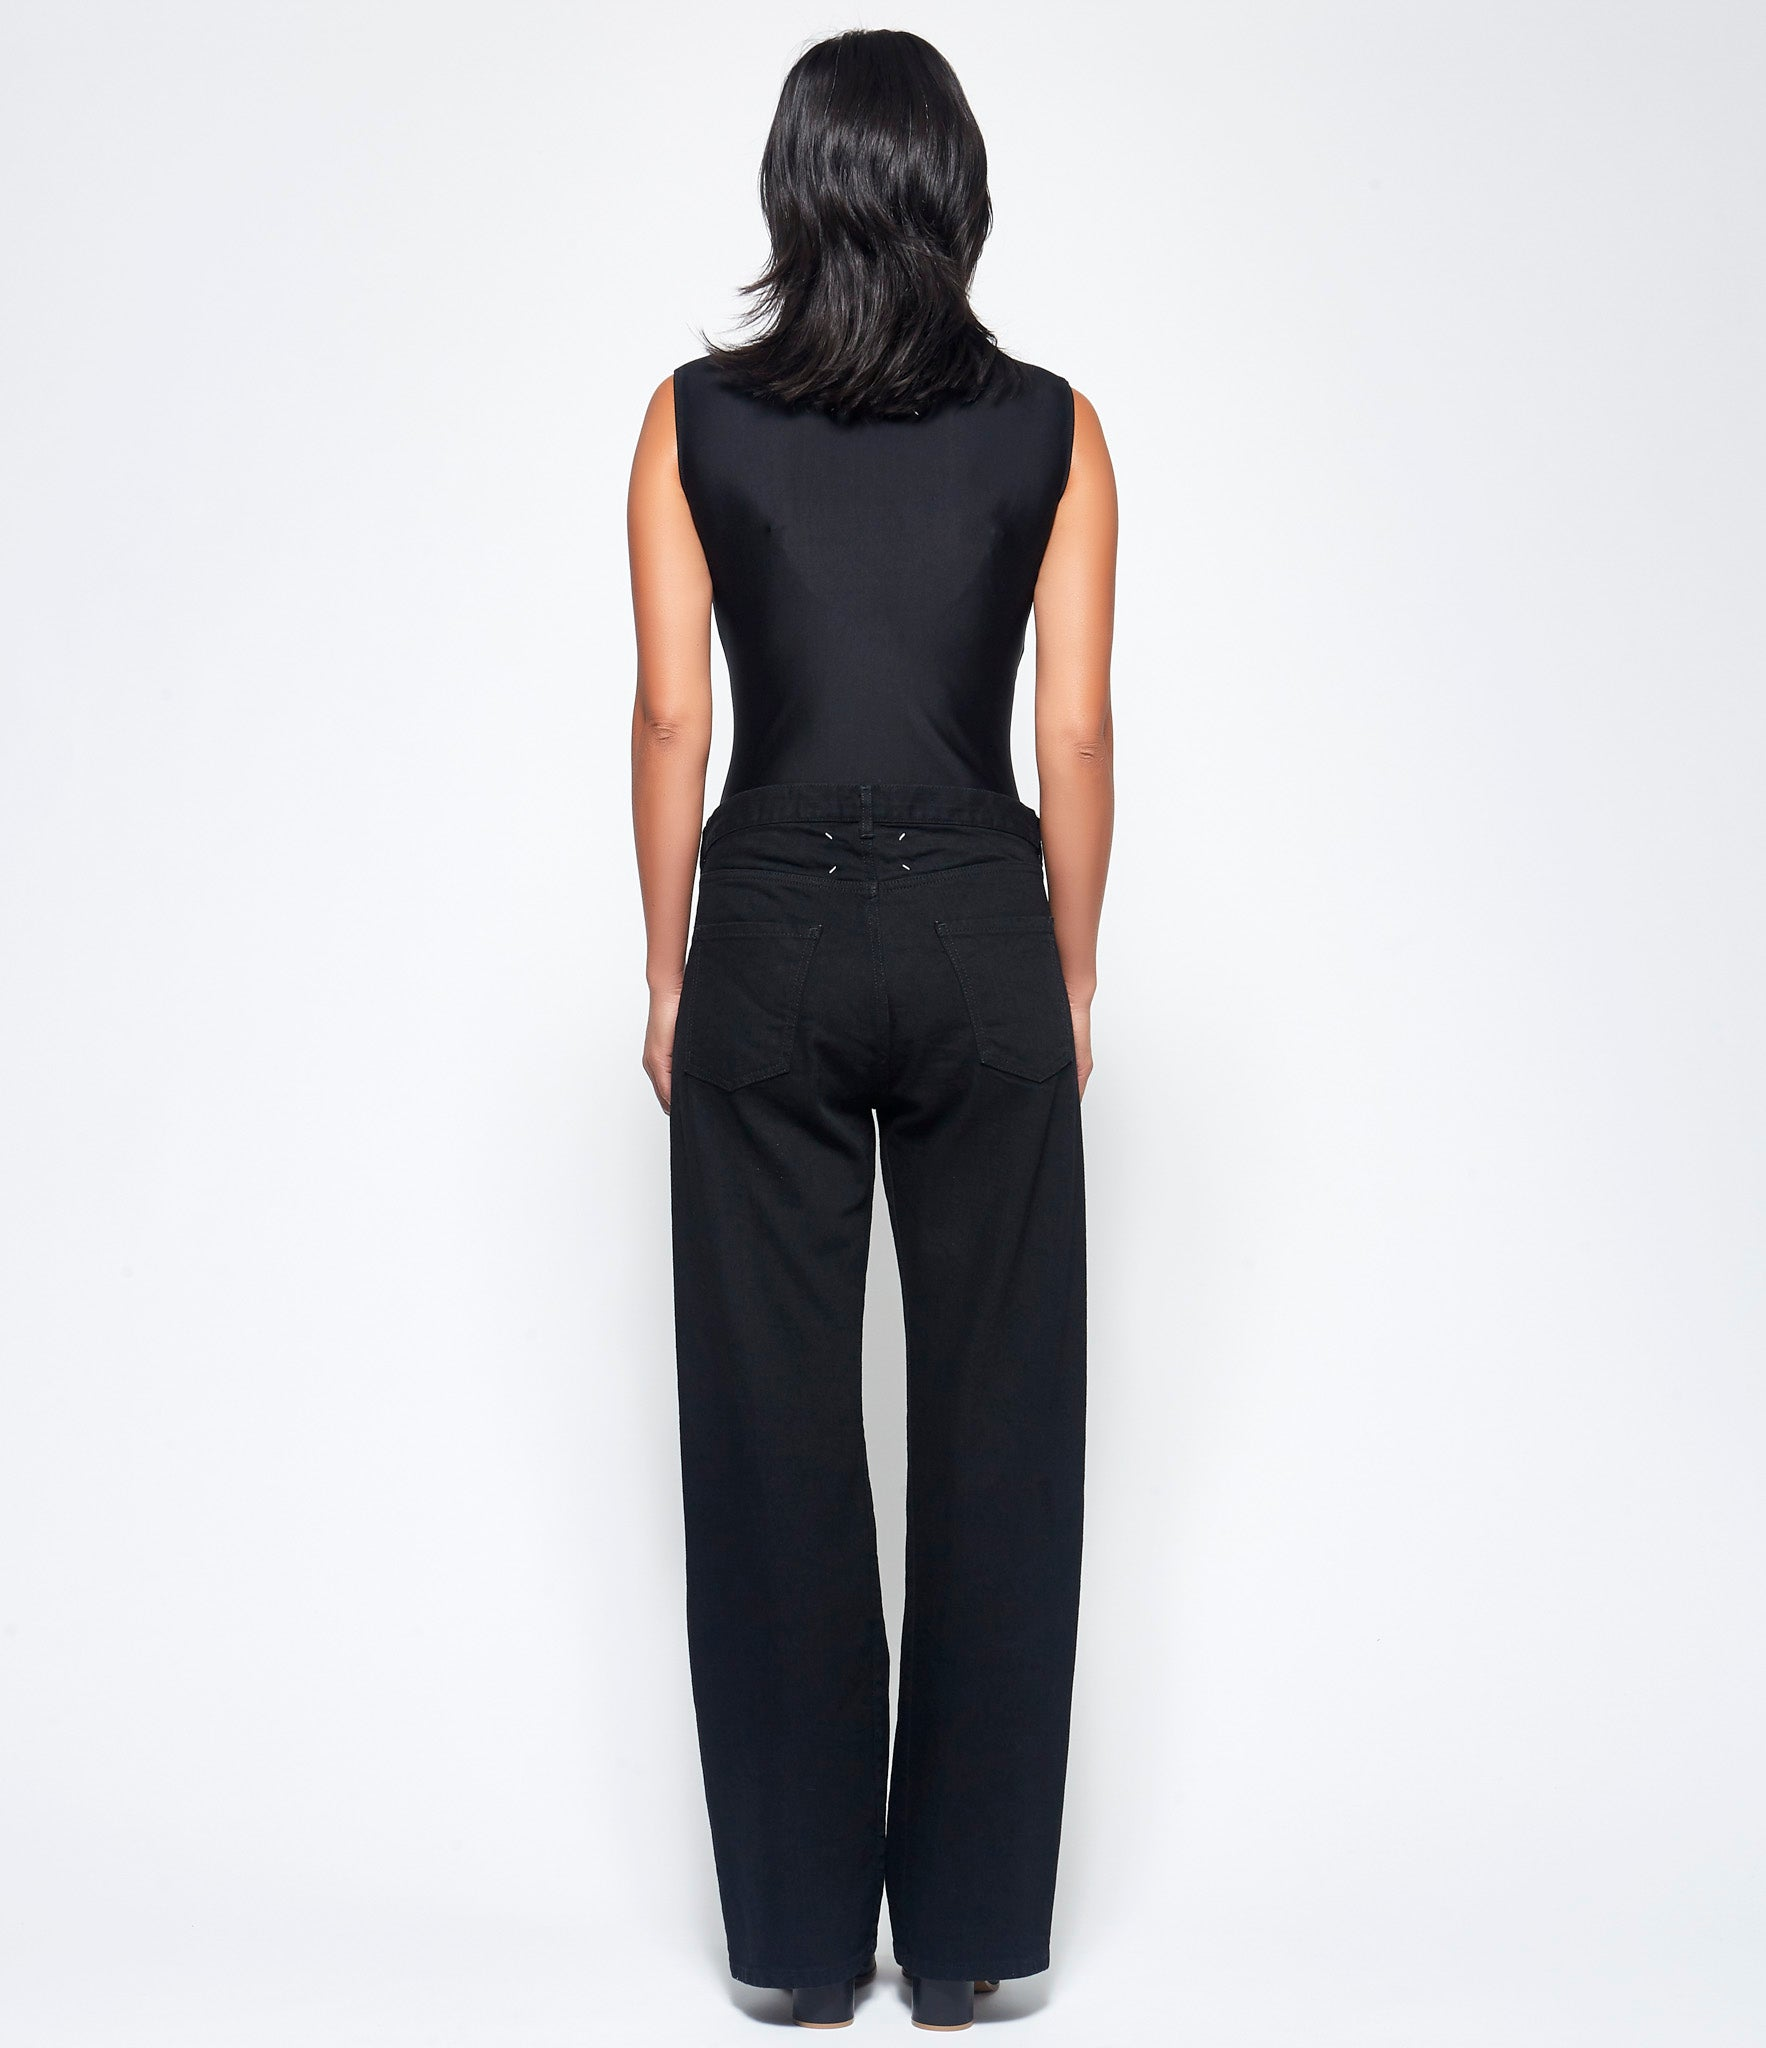 Maison Margiela Black Denim Pants